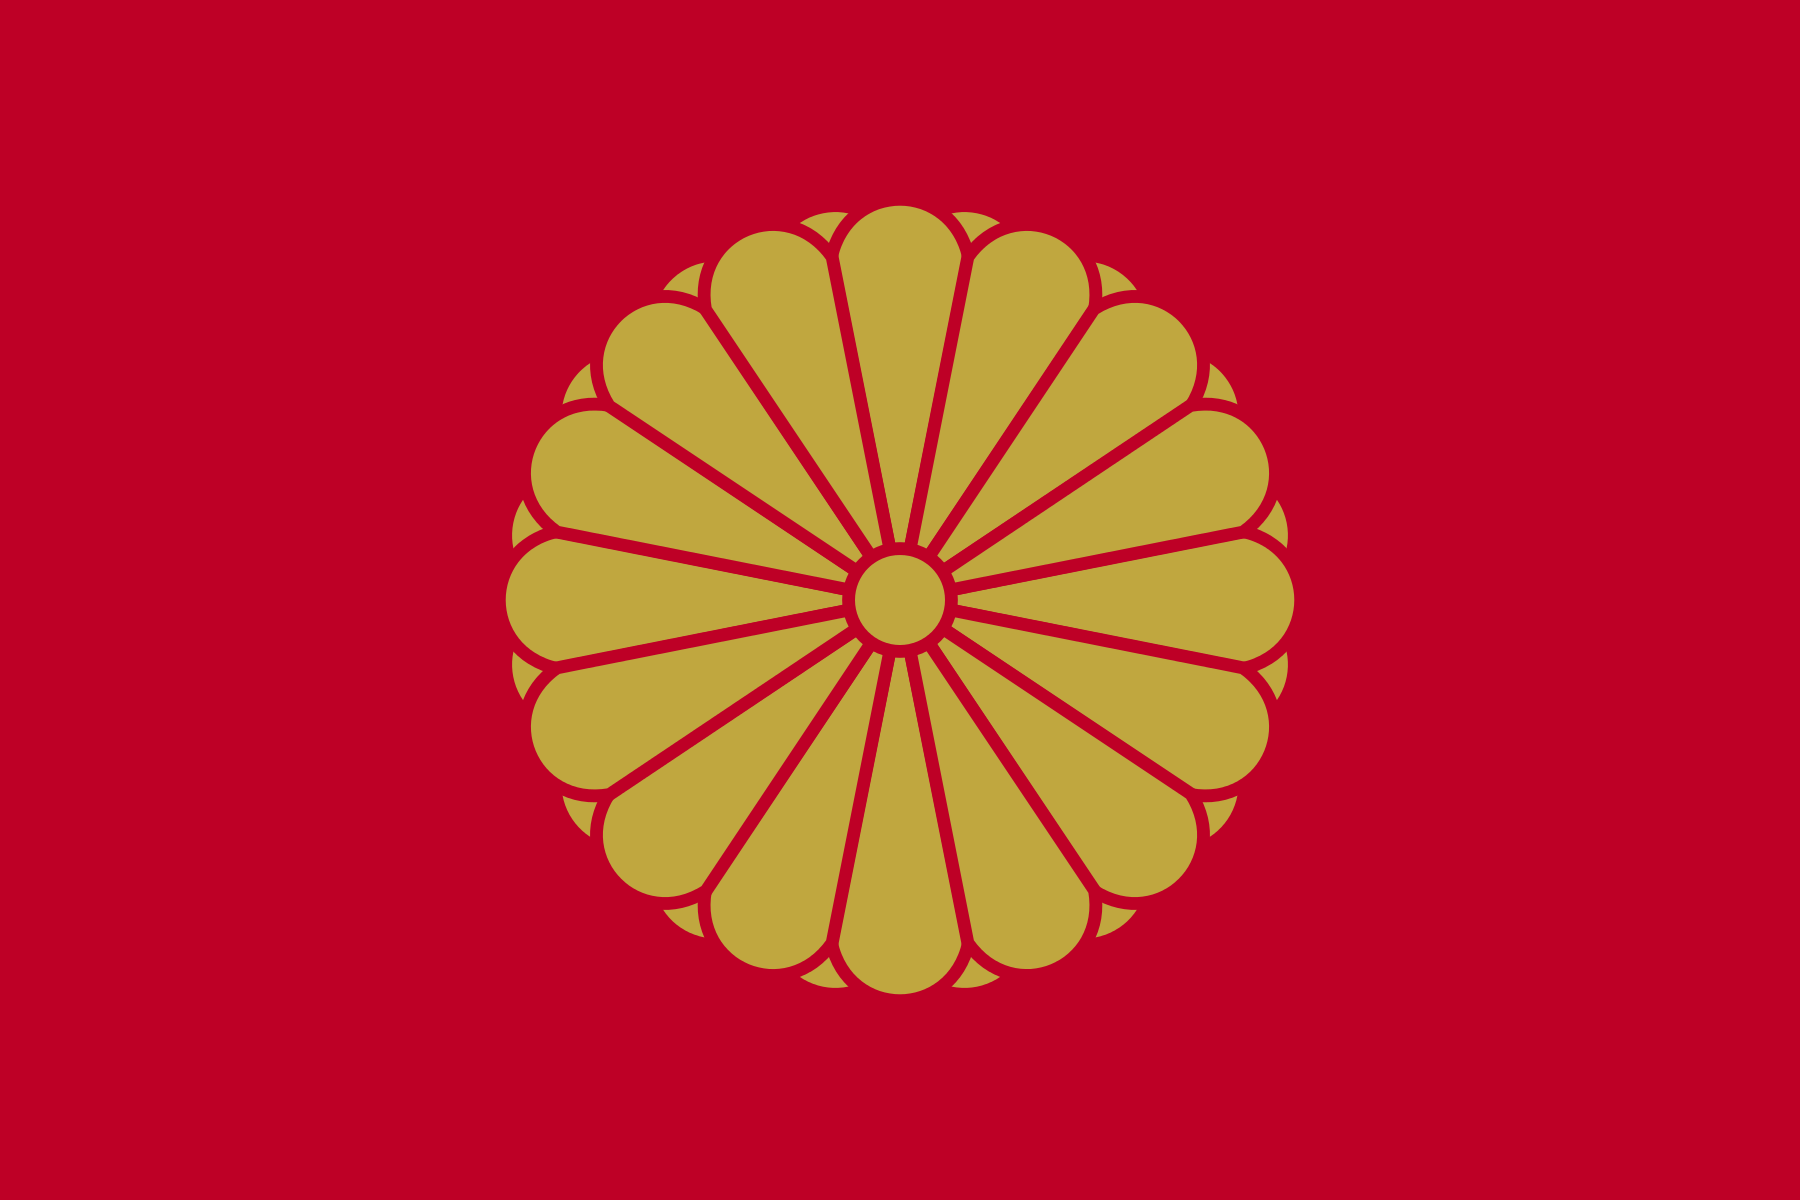 Imperial standard of the emperor of japan